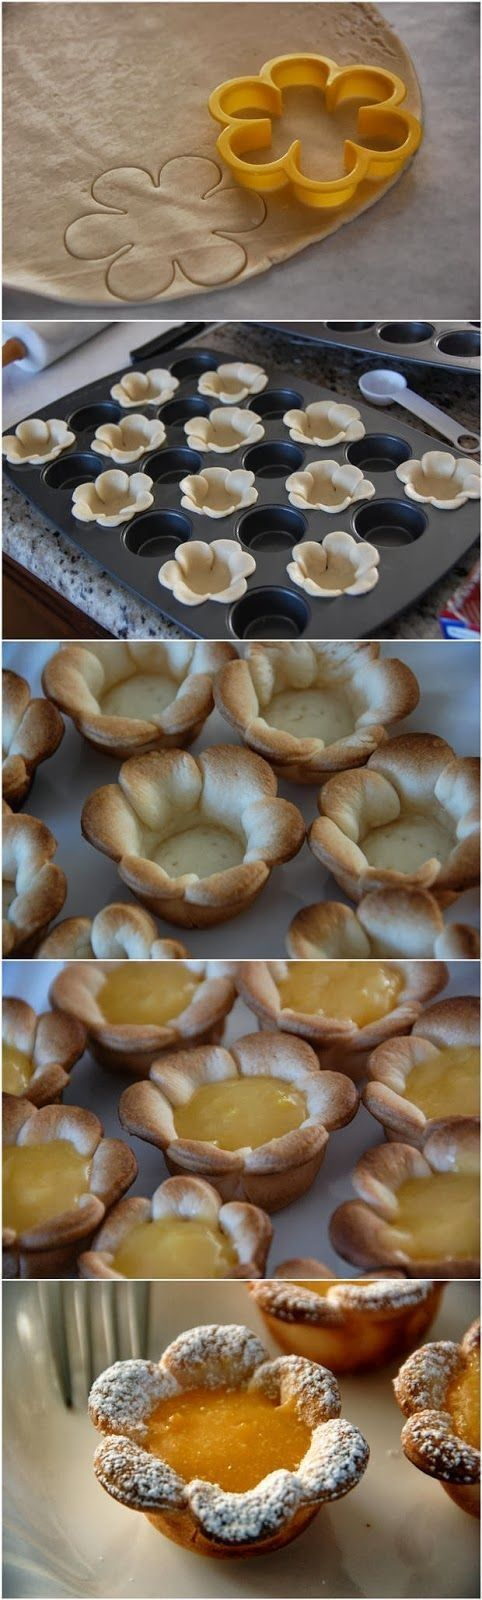 Mini Lemon Curd Tarts #mini